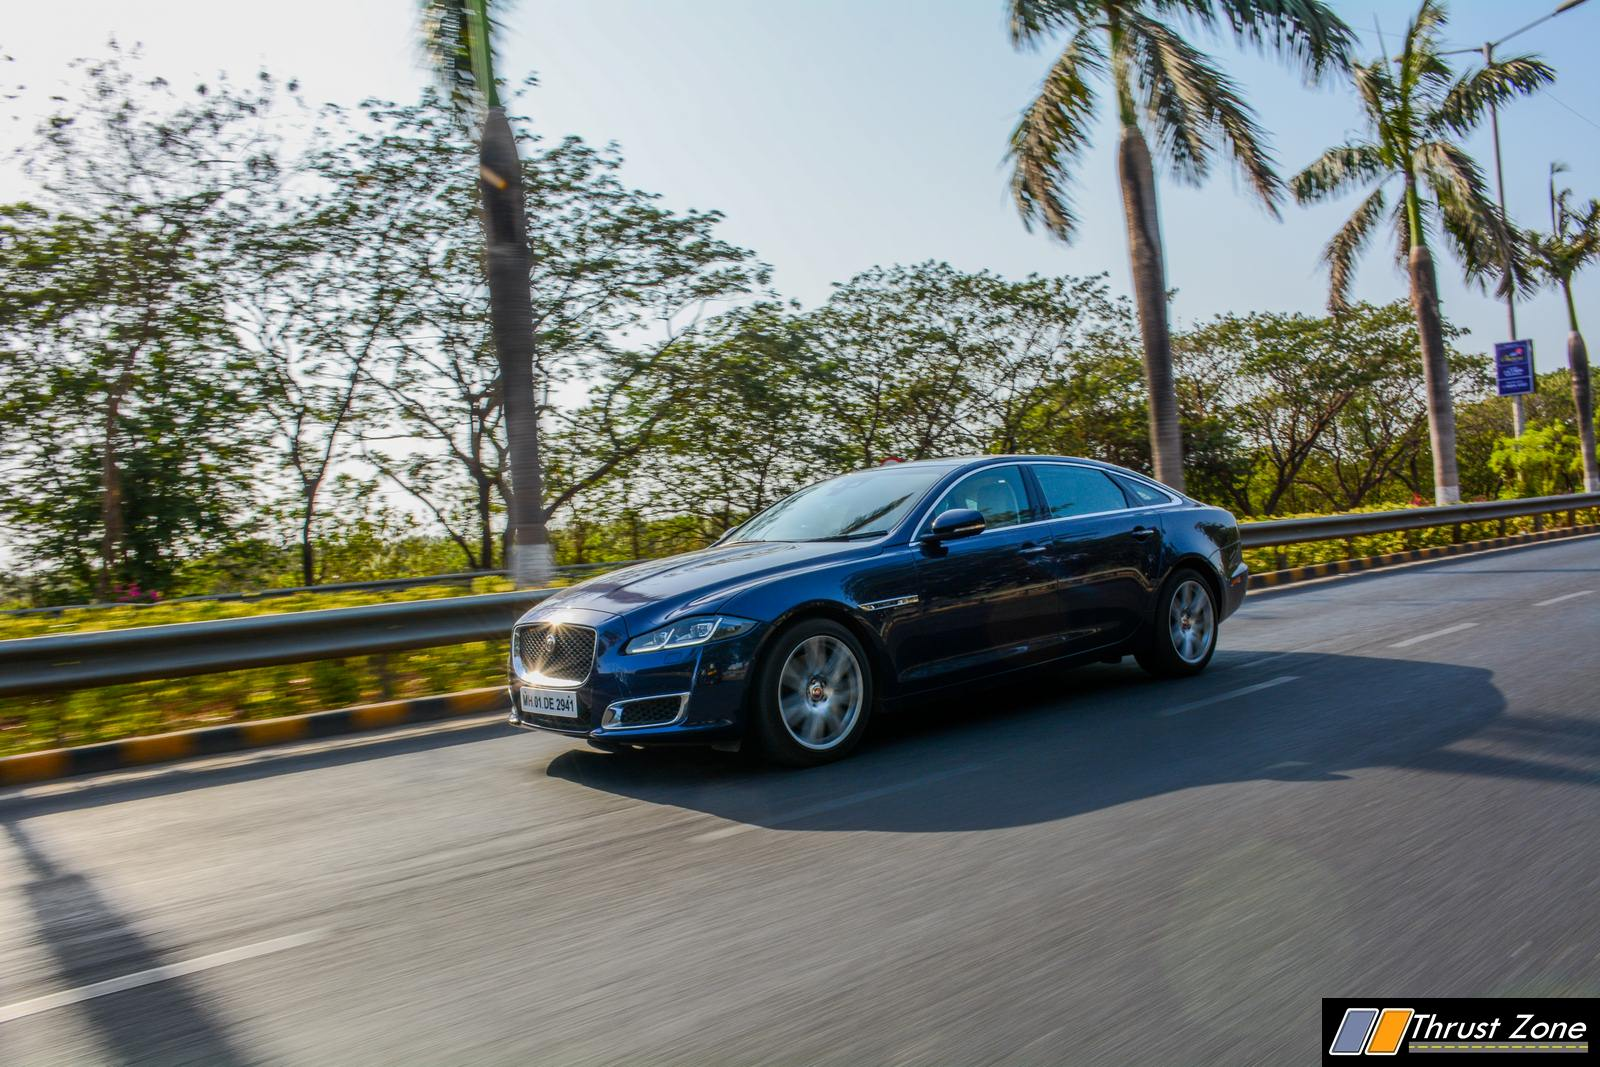 https://www.thrustzone.com/wp-content/uploads/2019/05/2019-Jaguar-XJ-50-Diesel-V6-Review-4.jpg